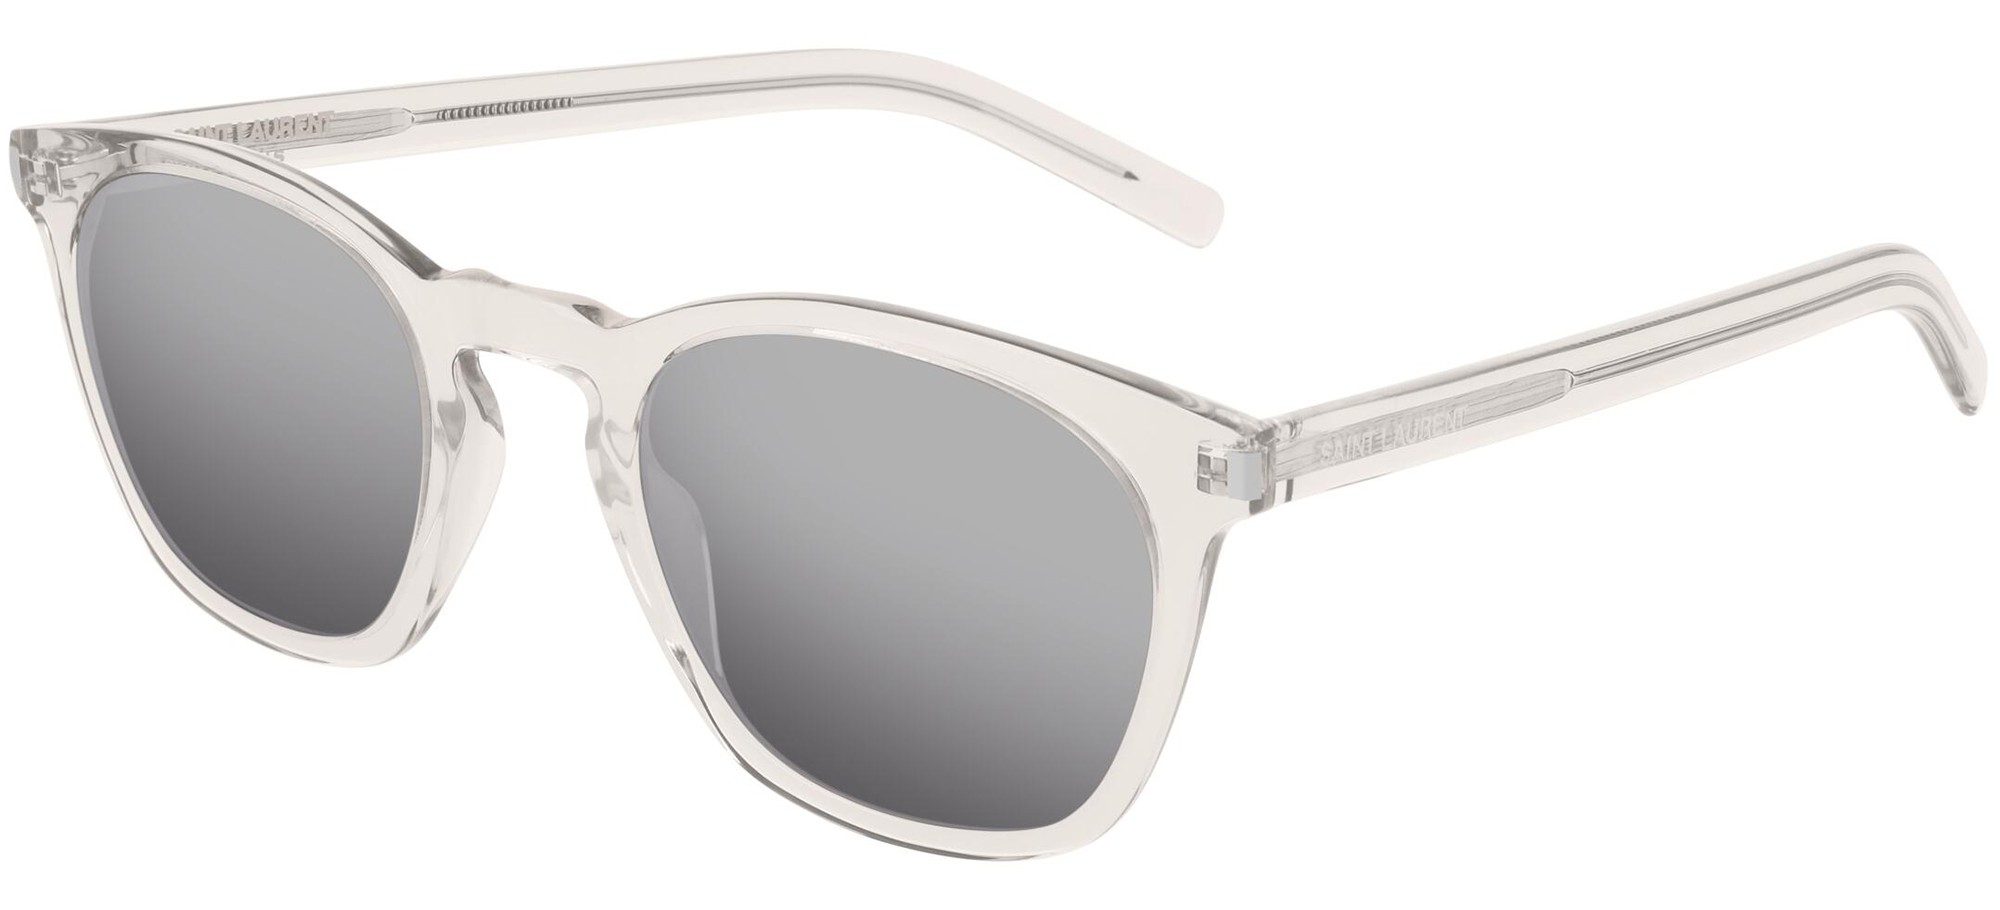 Saint Laurent sunglasses SL 28 SLIM